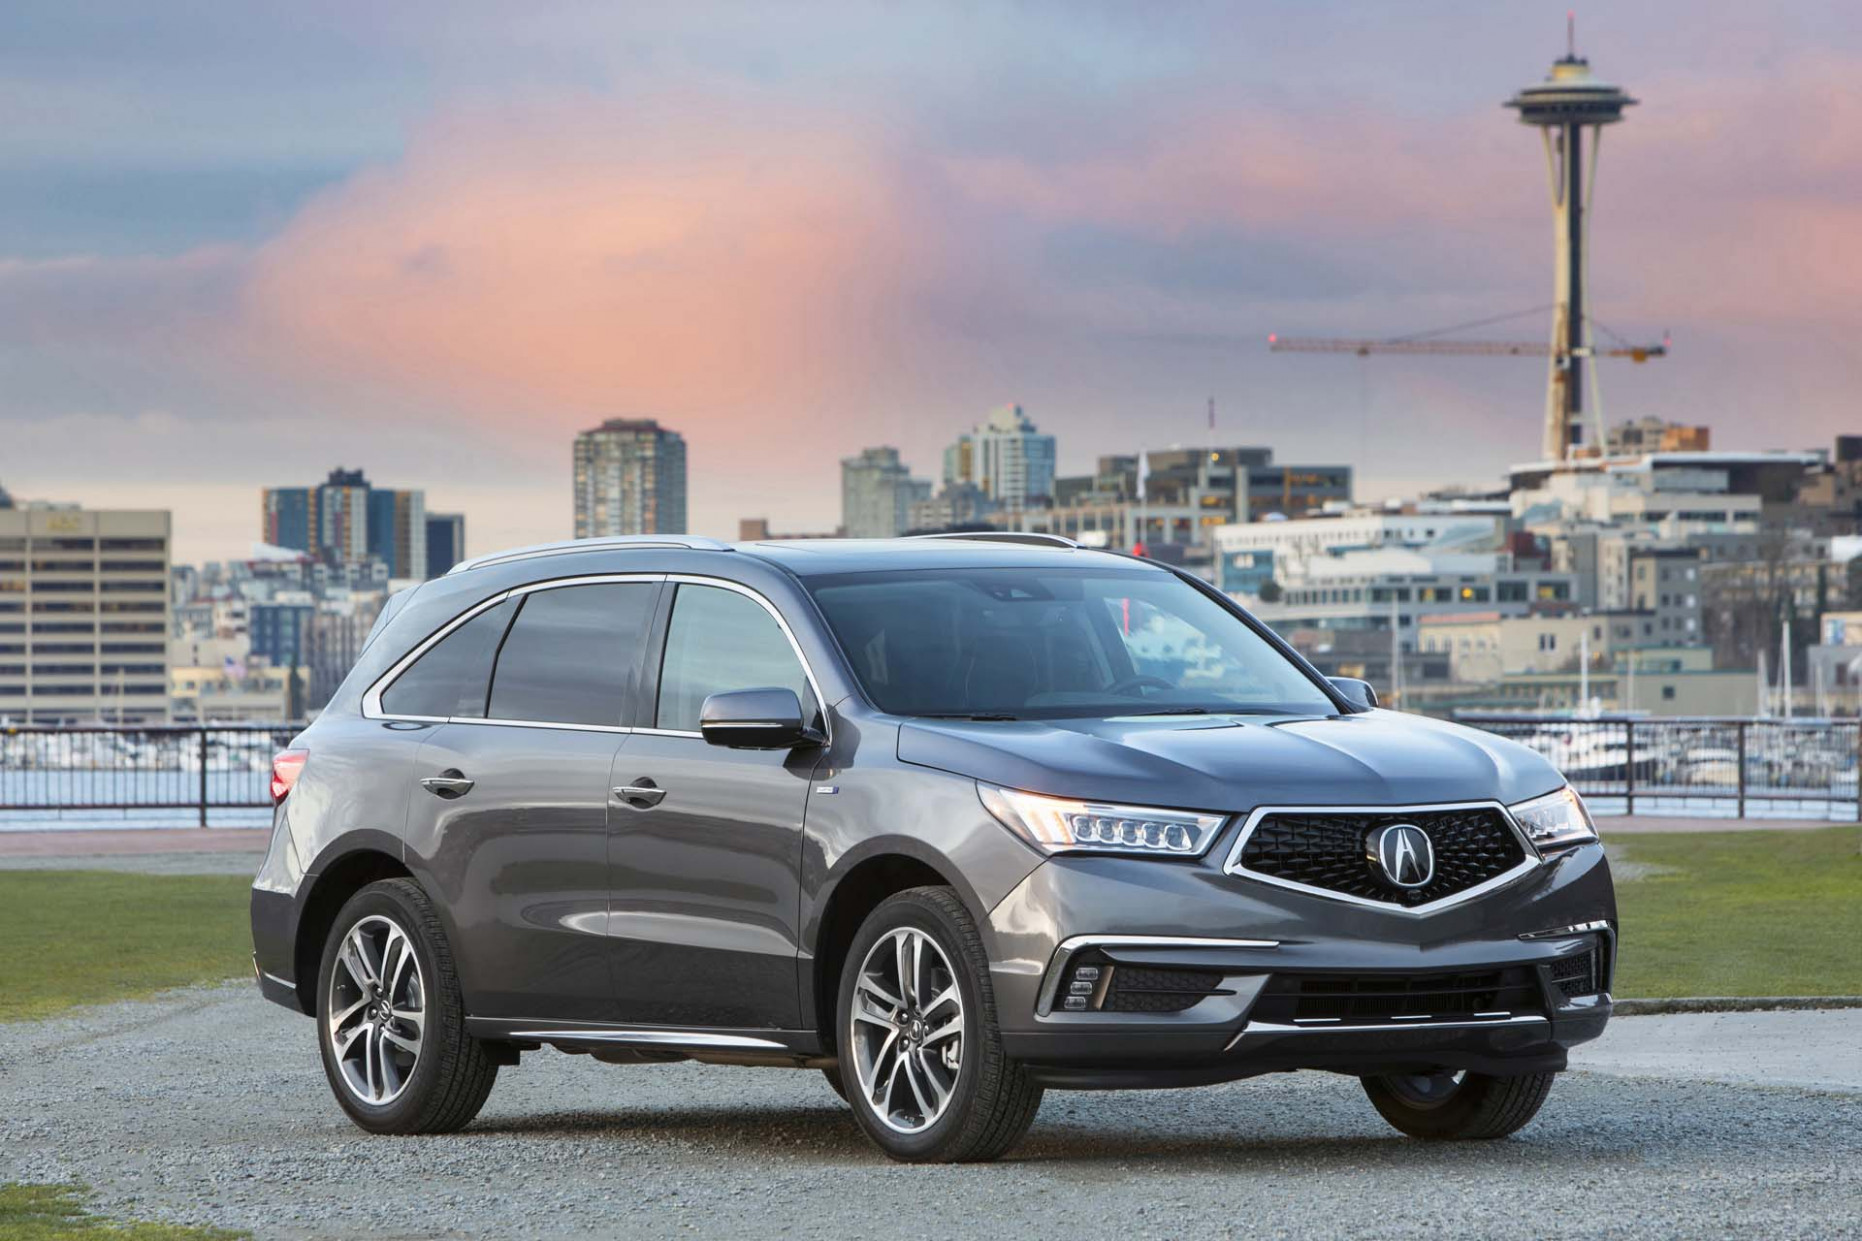 11 Acura MDX Review, Ratings, Specs, Prices, and Photos - The ..